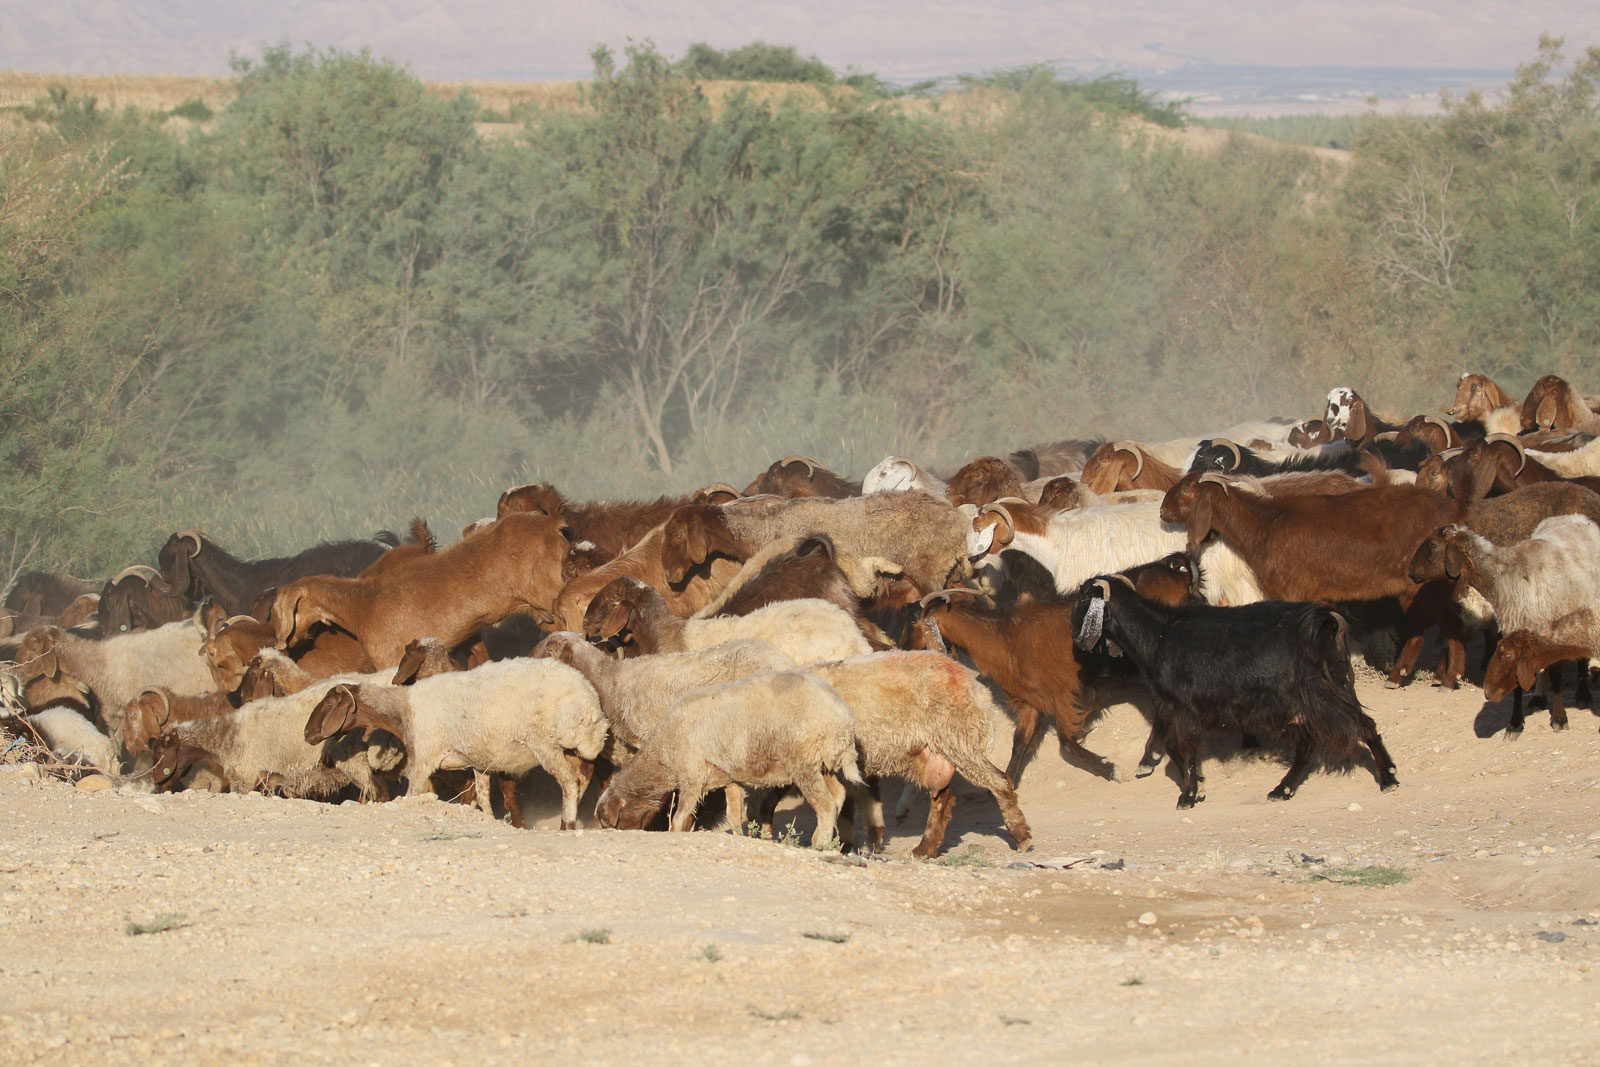 Herds, wild grazing